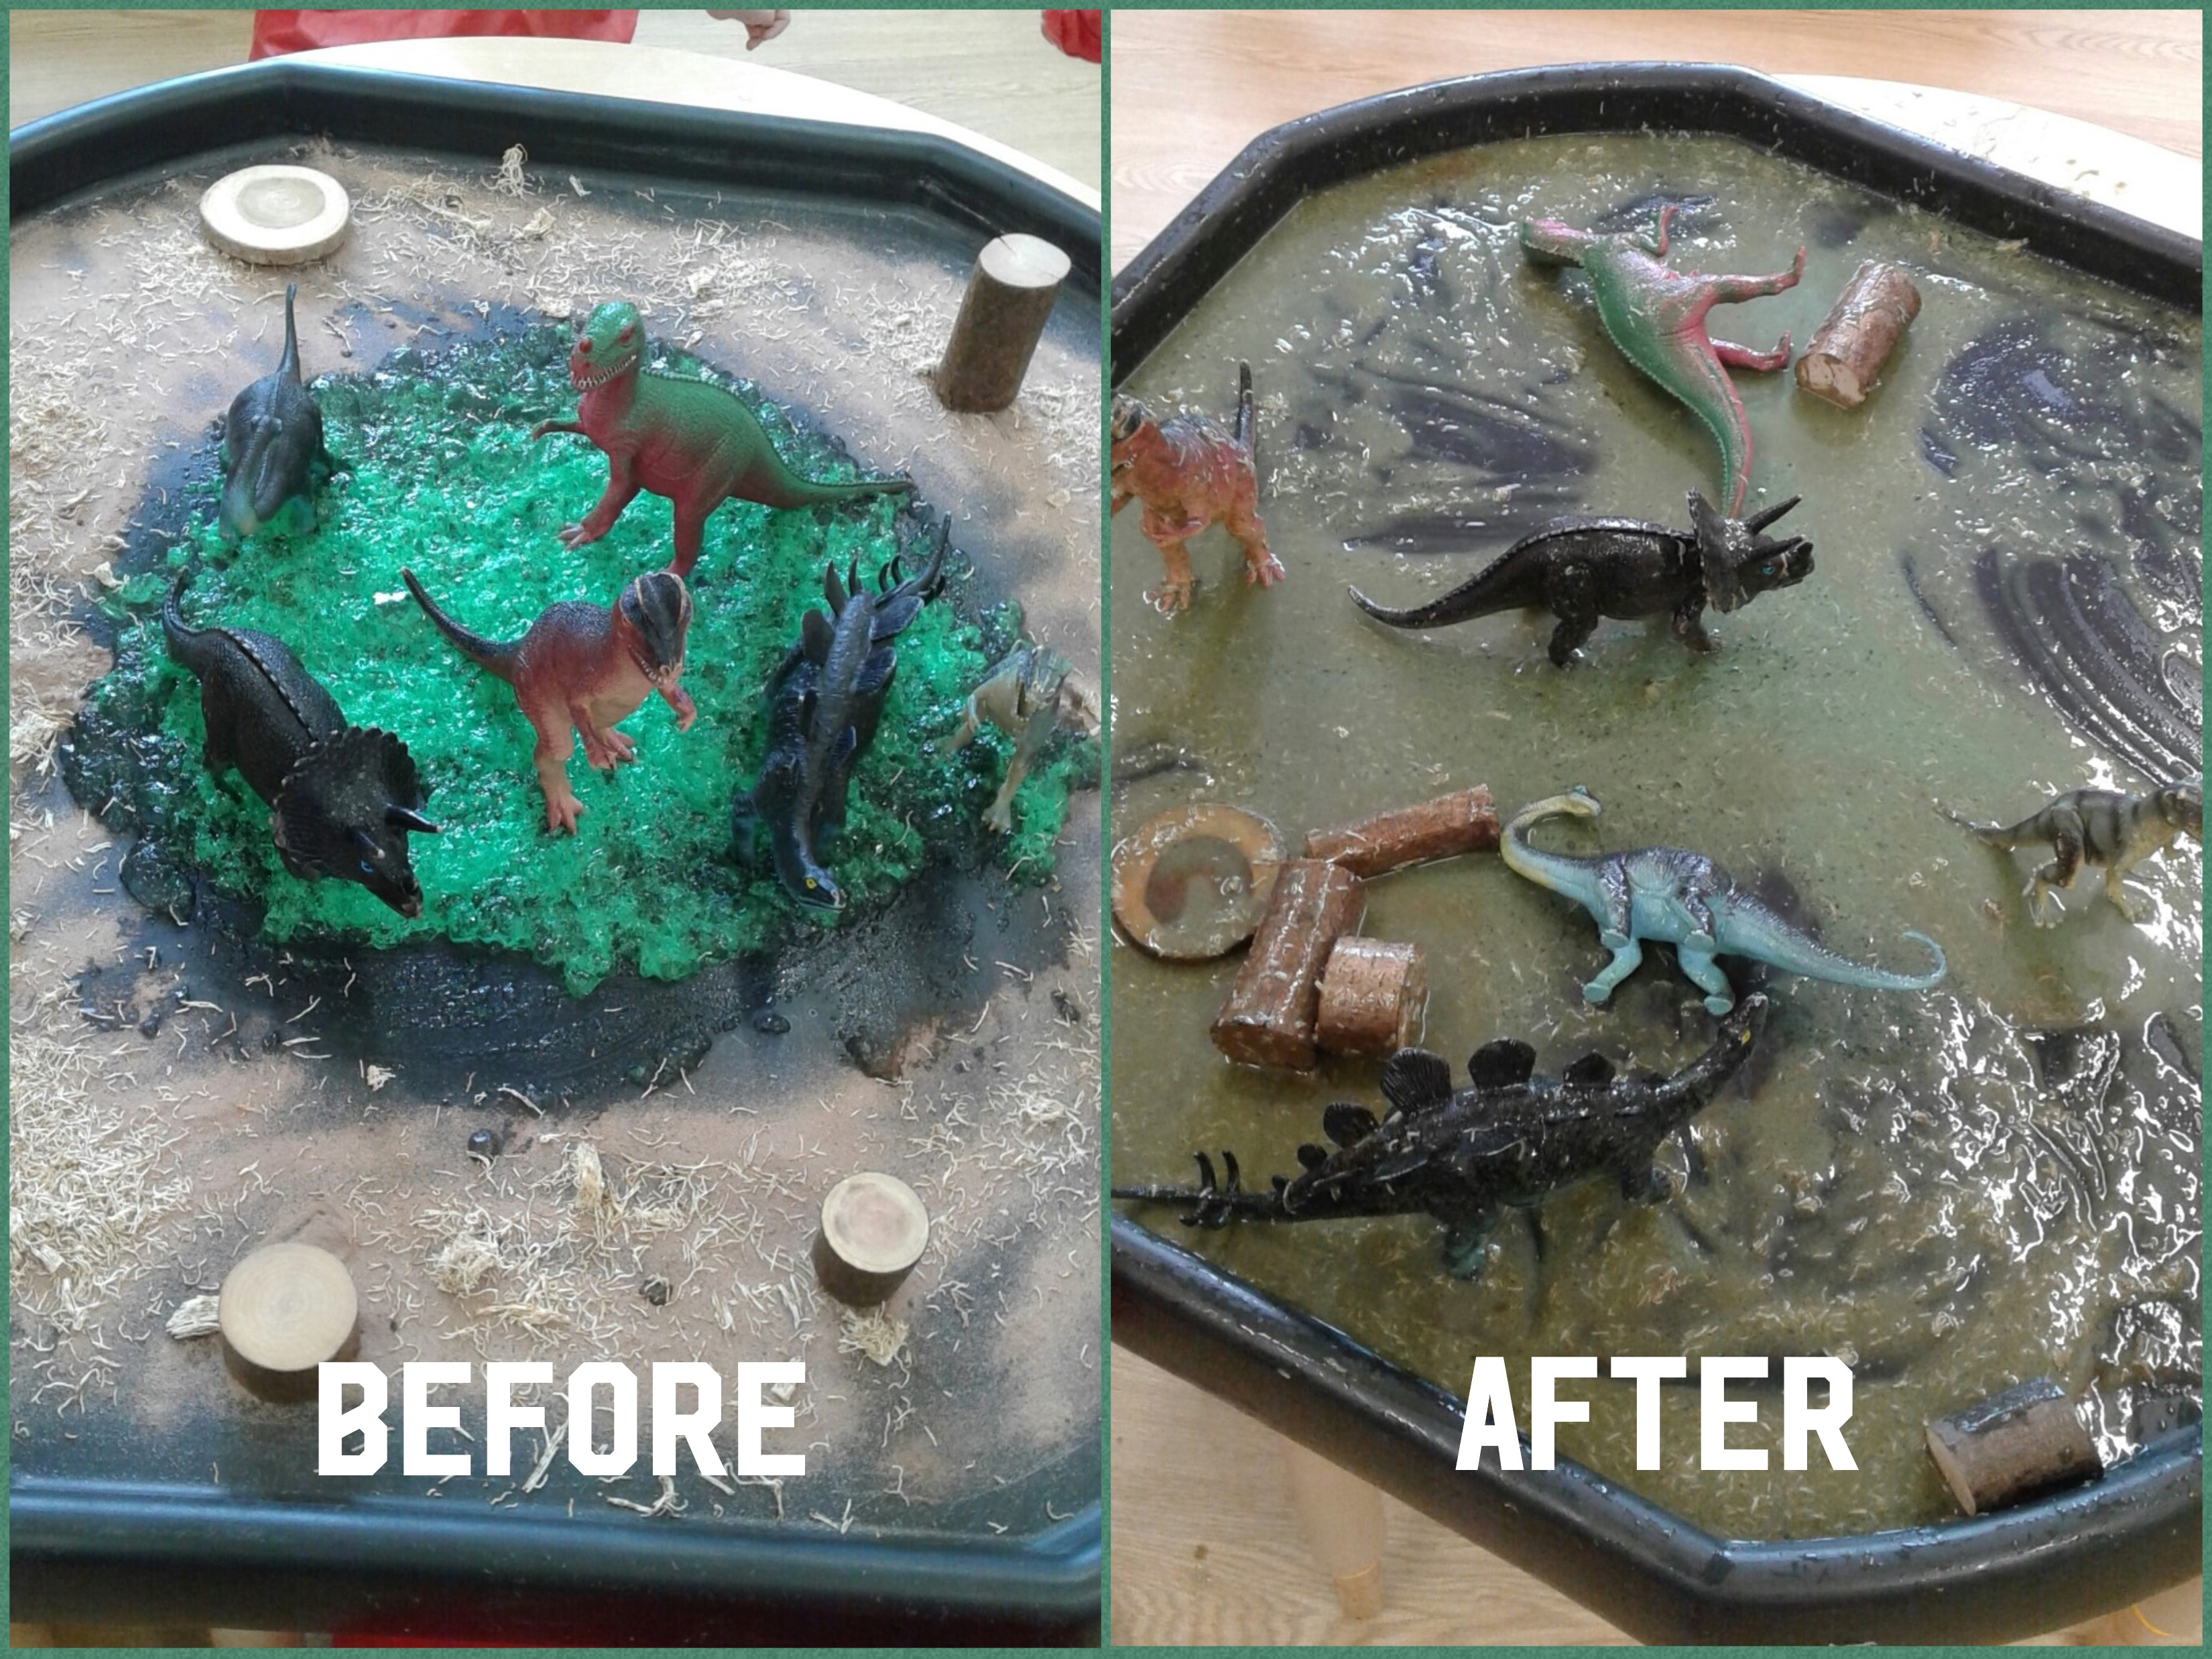 The children have shown an interest in dinosaurs so we decided to explore more by creating our very own dinosaur swamp